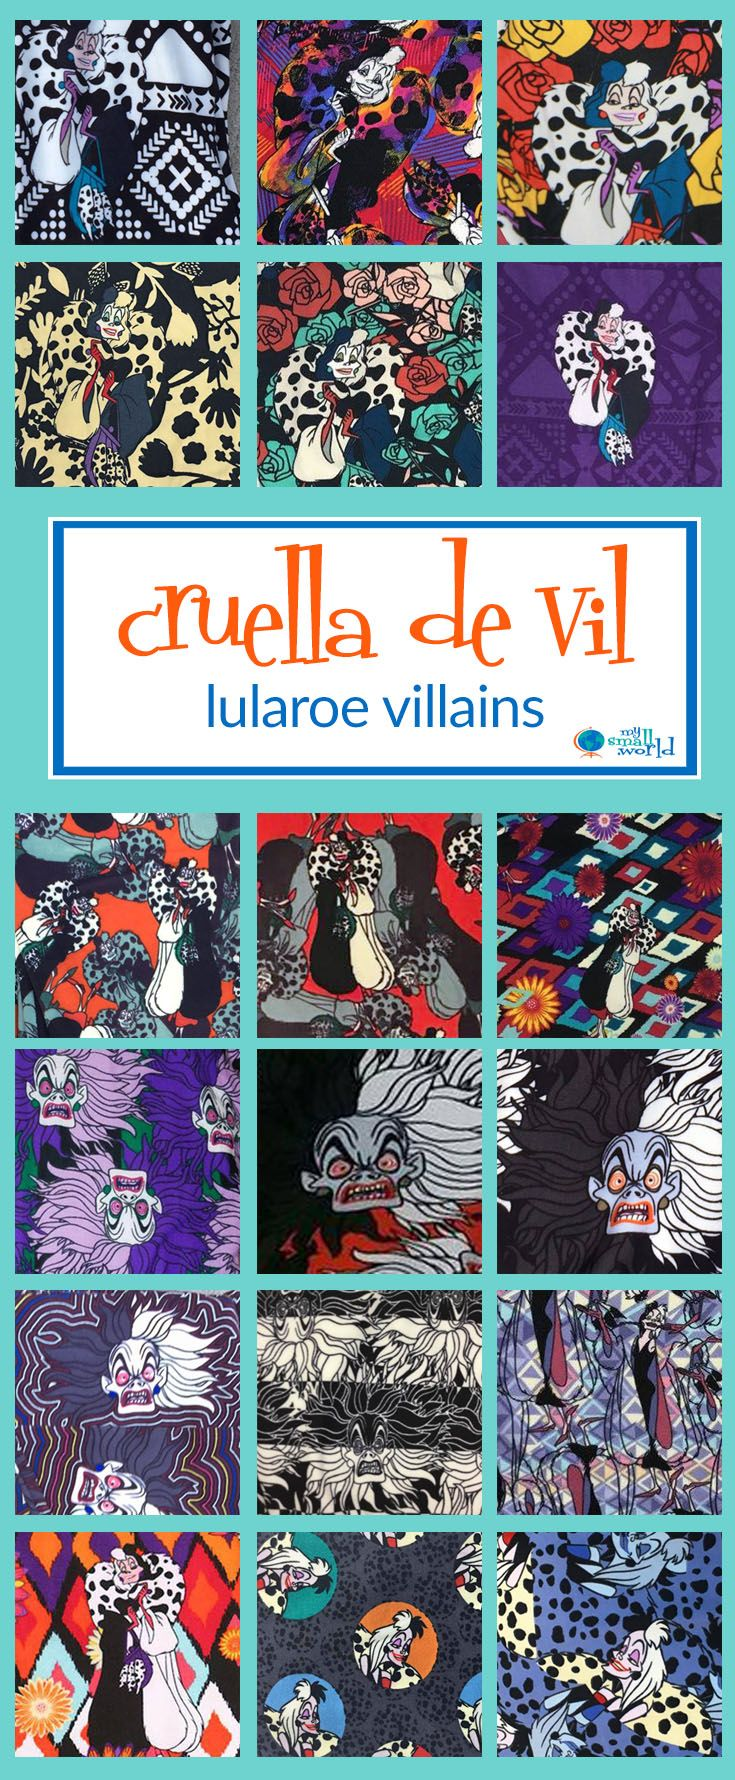 e52beb9c1ea4b LuLaRoe + Disney = a match made in heaven! And nothing is more deliciously  wicked than Disney Villain LuLaRoe prints - Maleficent, the Evil Queen,  Cruella, ...